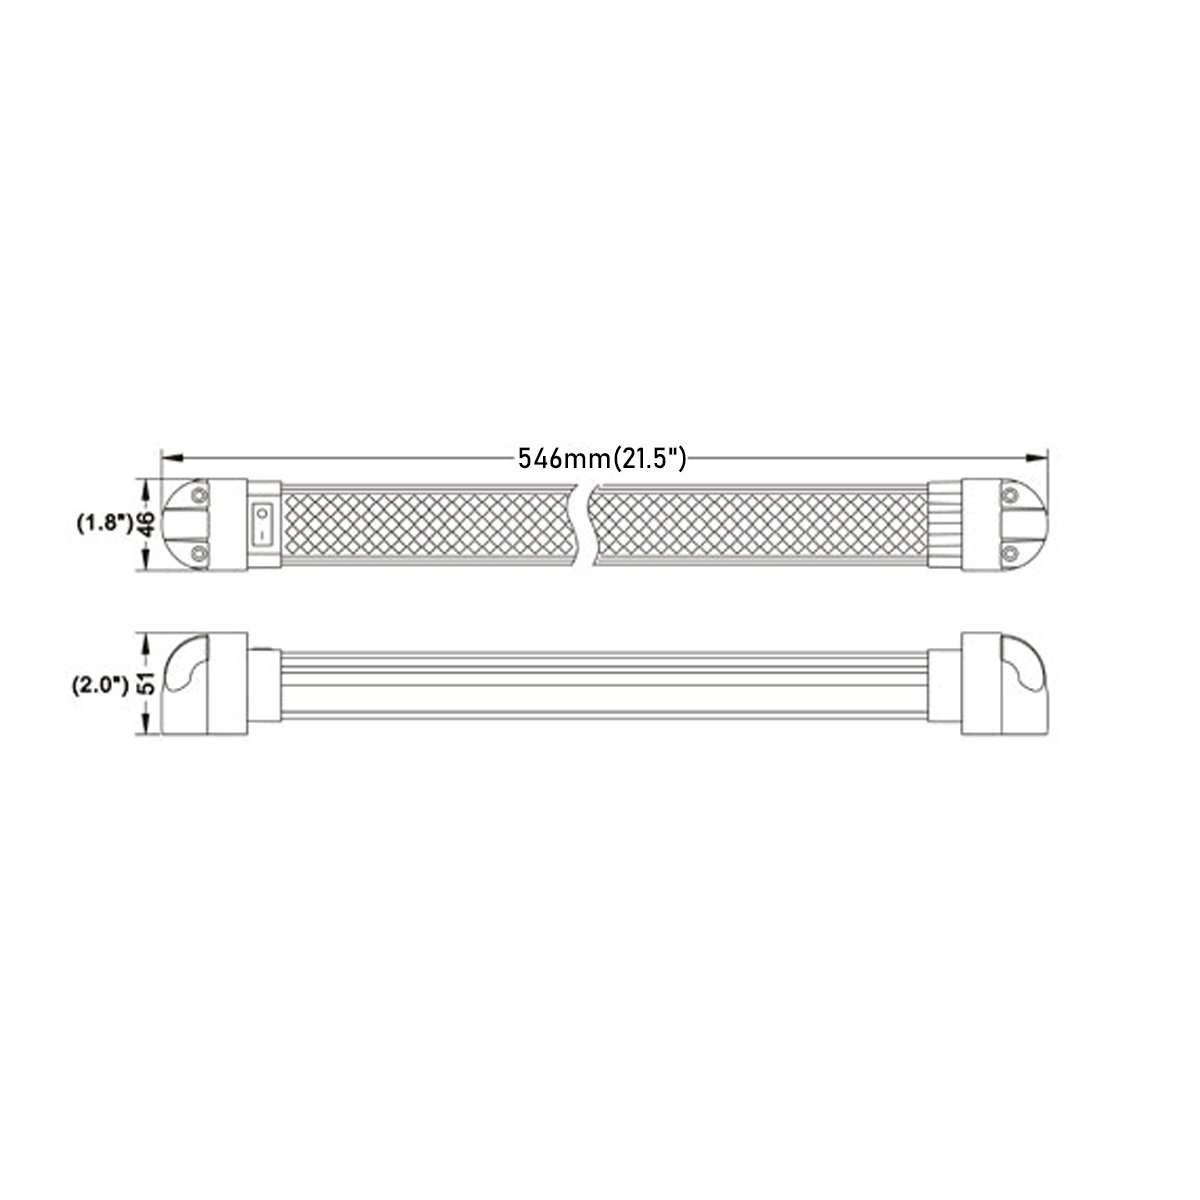 1 Pack Lightronic Heavy-Duty 30 Inch 18W 1260 Lumens 6000K 180/° Rotating LED Light Fixture with Rocker Switch